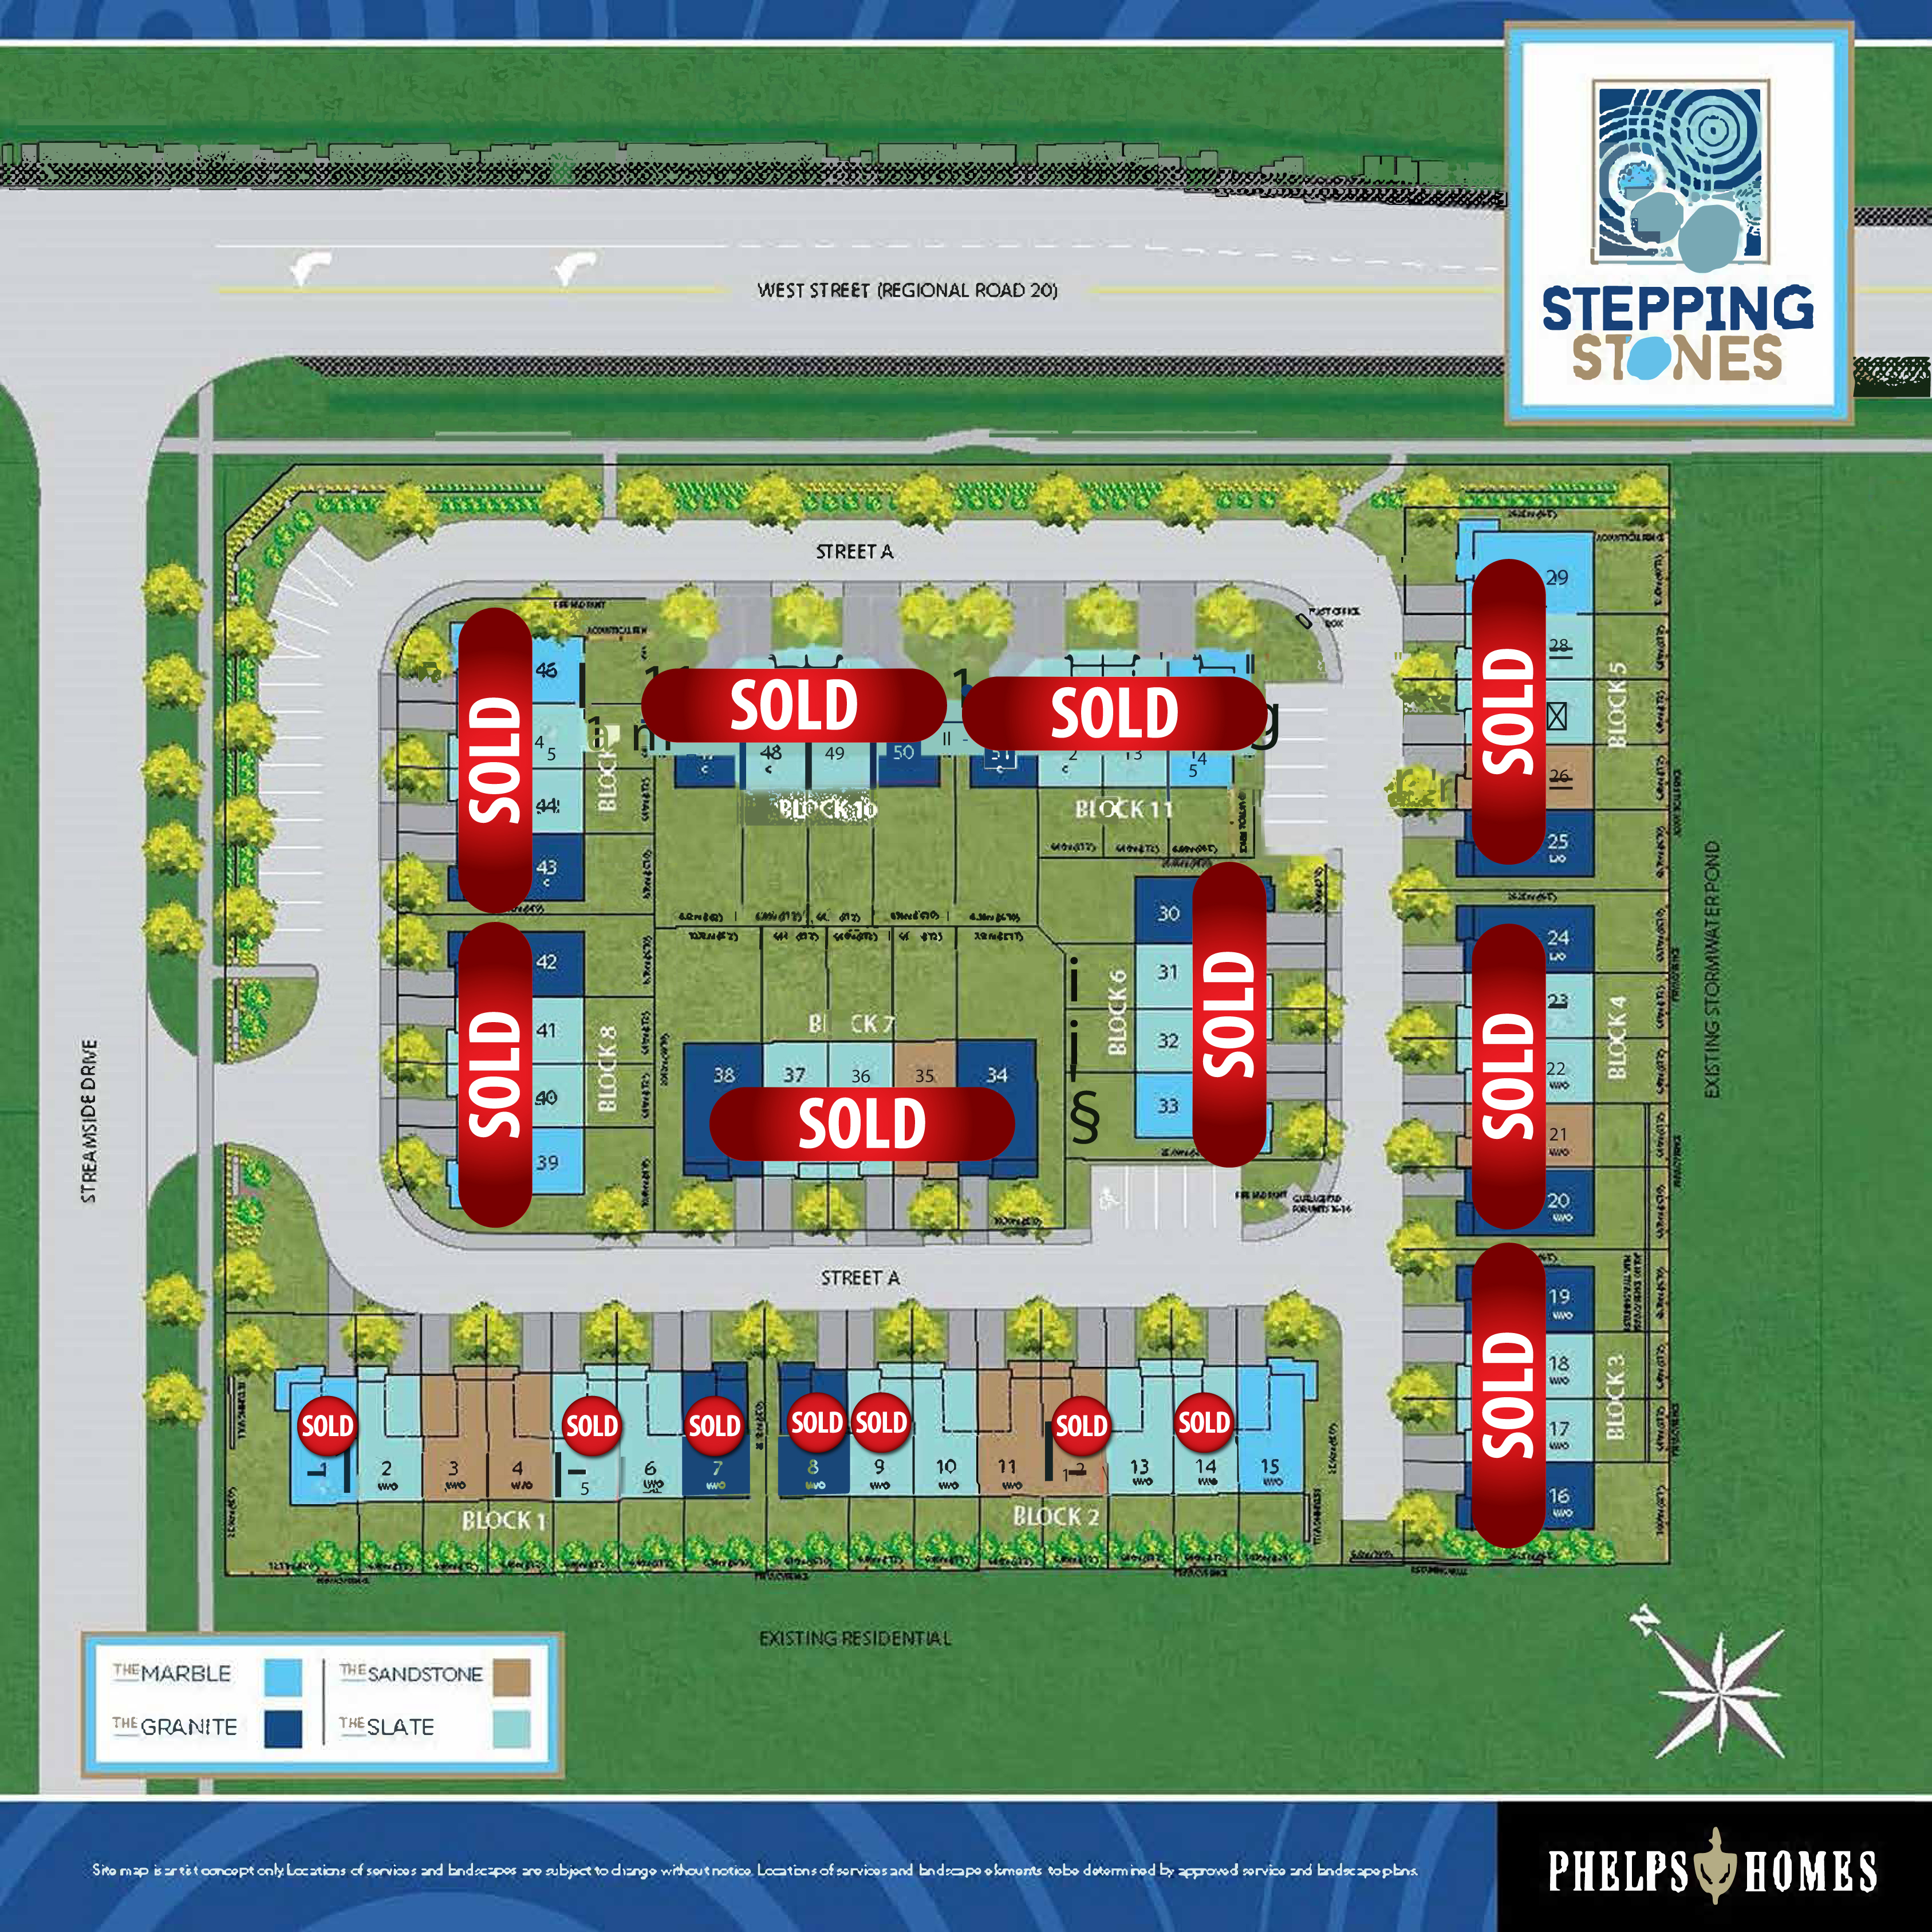 Stepping Stones Site Plan - 09.03